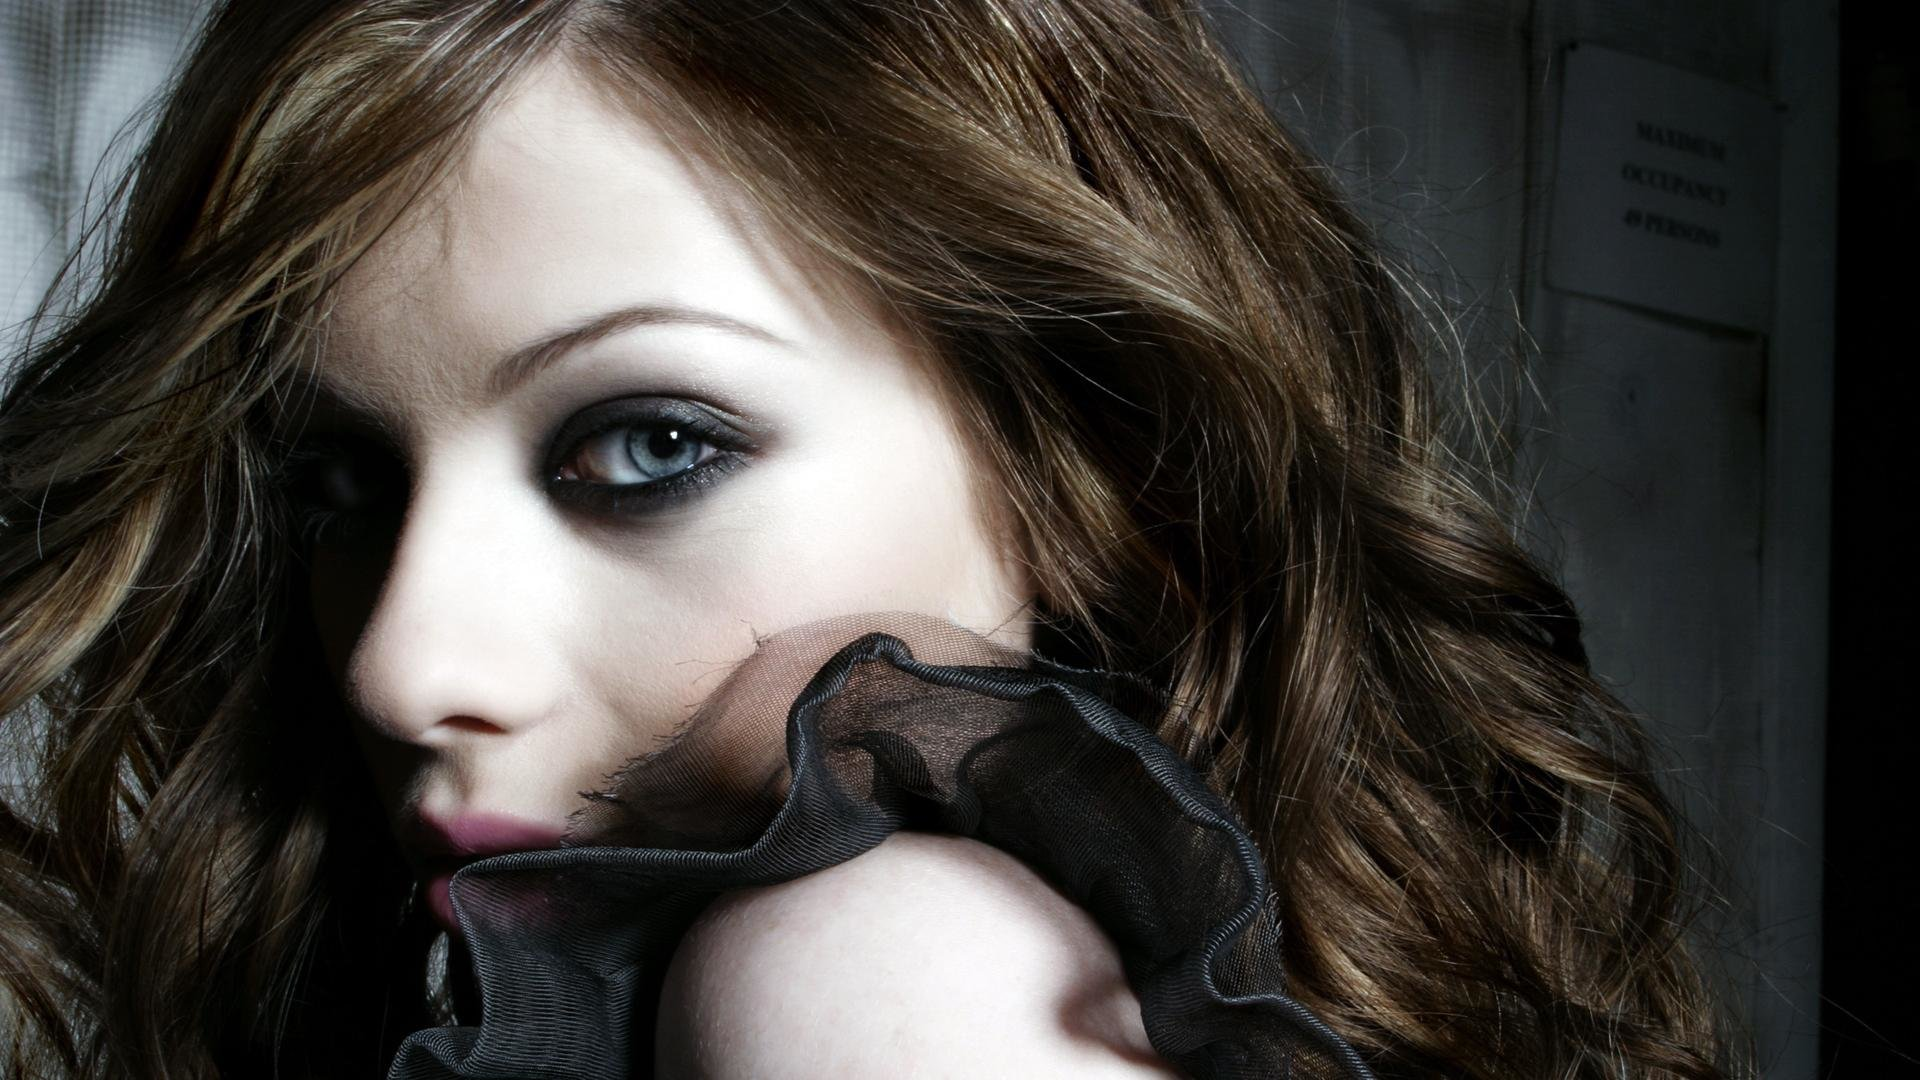 Awesome Michelle Trachtenberg free wallpaper ID:353029 for full hd 1920x1080 desktop